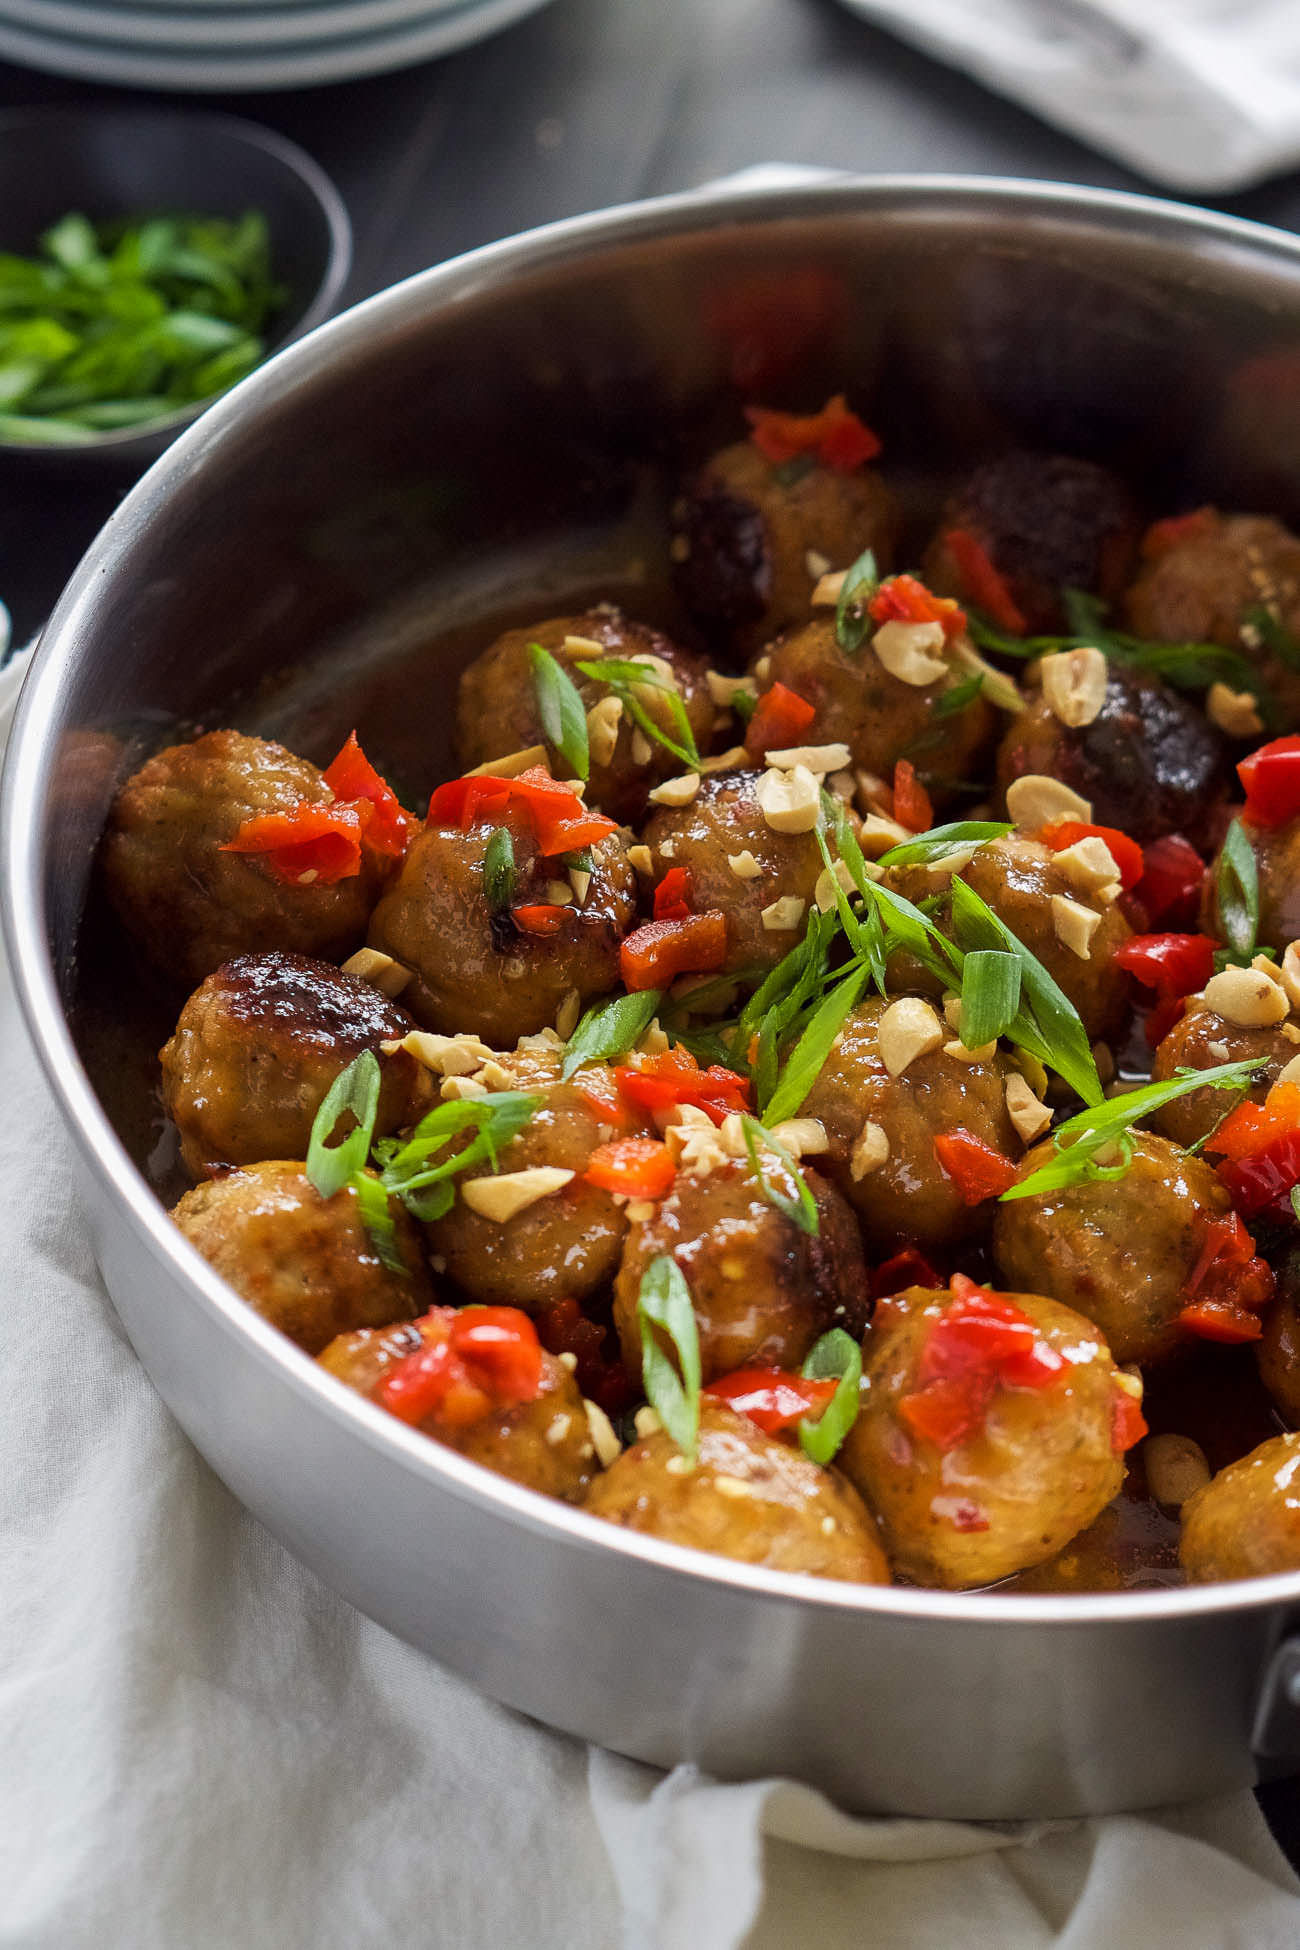 Meatballs are juicy meatballs drenched in a homemade sweet chili sauce ...